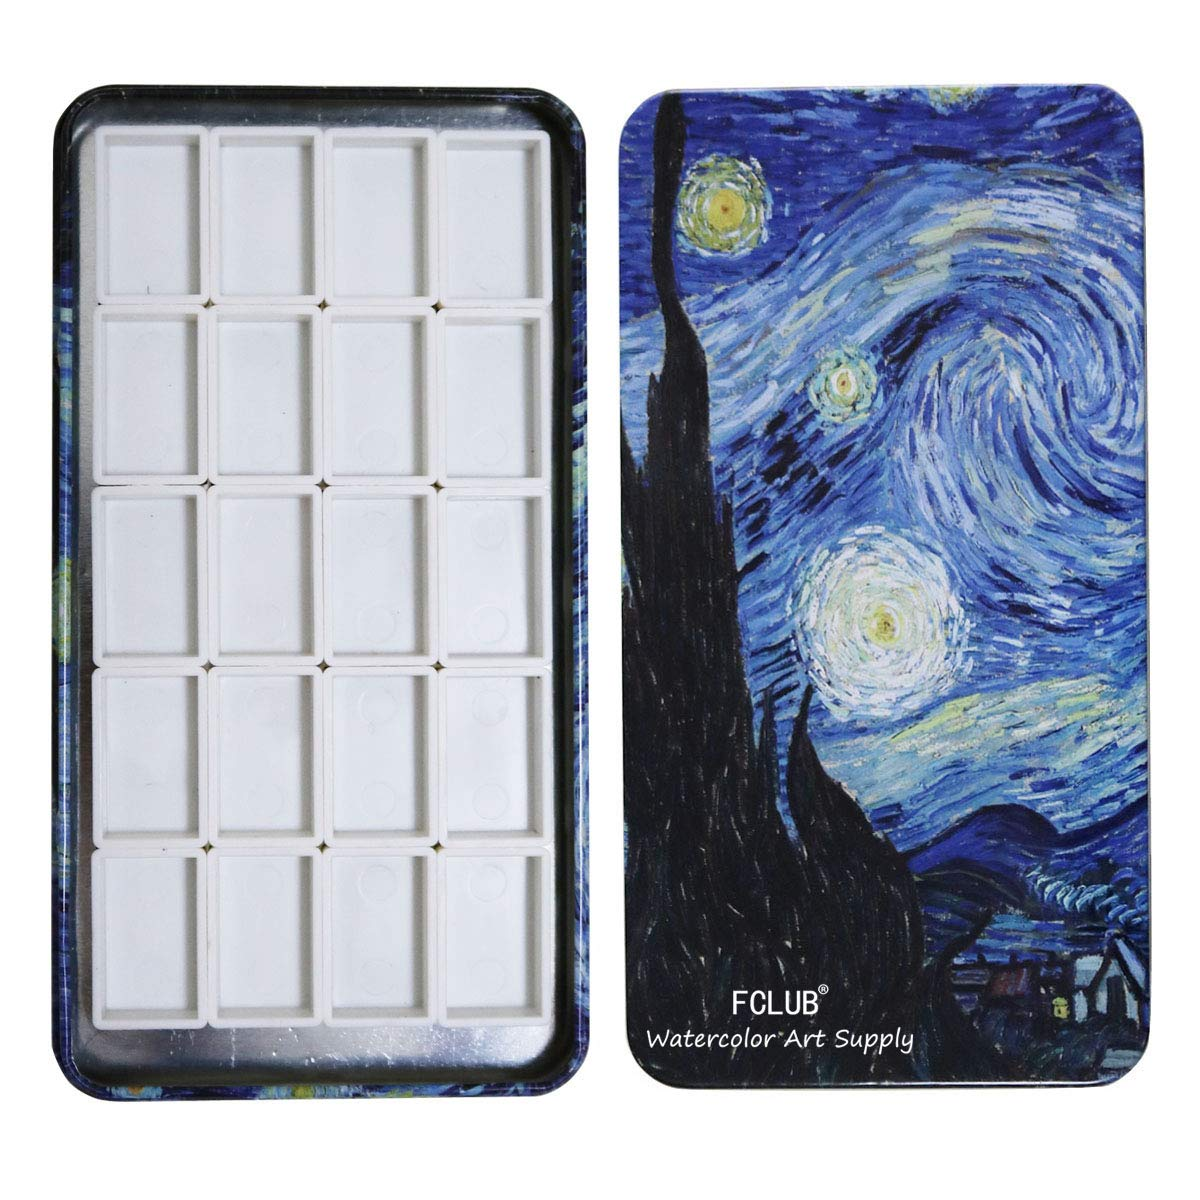 FCLUB Watercolor Tins Palette Paint Case with 20Pcs Full Pans Carrying Magnetic Stripe on The Bottom - Starry Night by Vincent Van Gosh by FCLUB